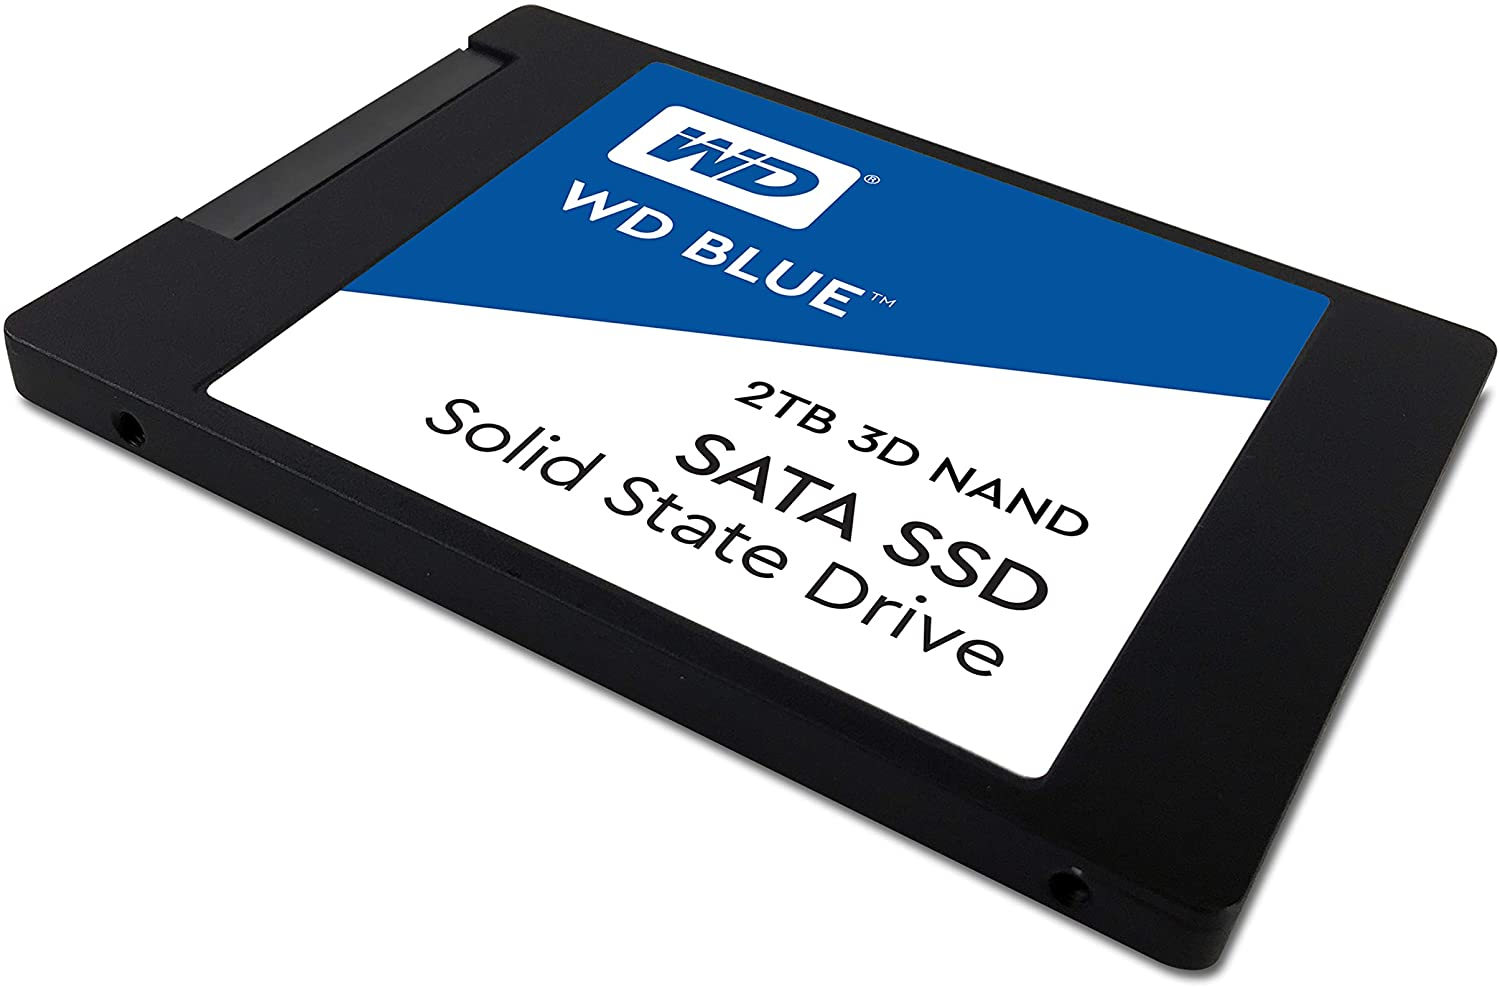 2TB SSD Sells for Just $169 from Western Digital WD Blue  | Is It Worth It?